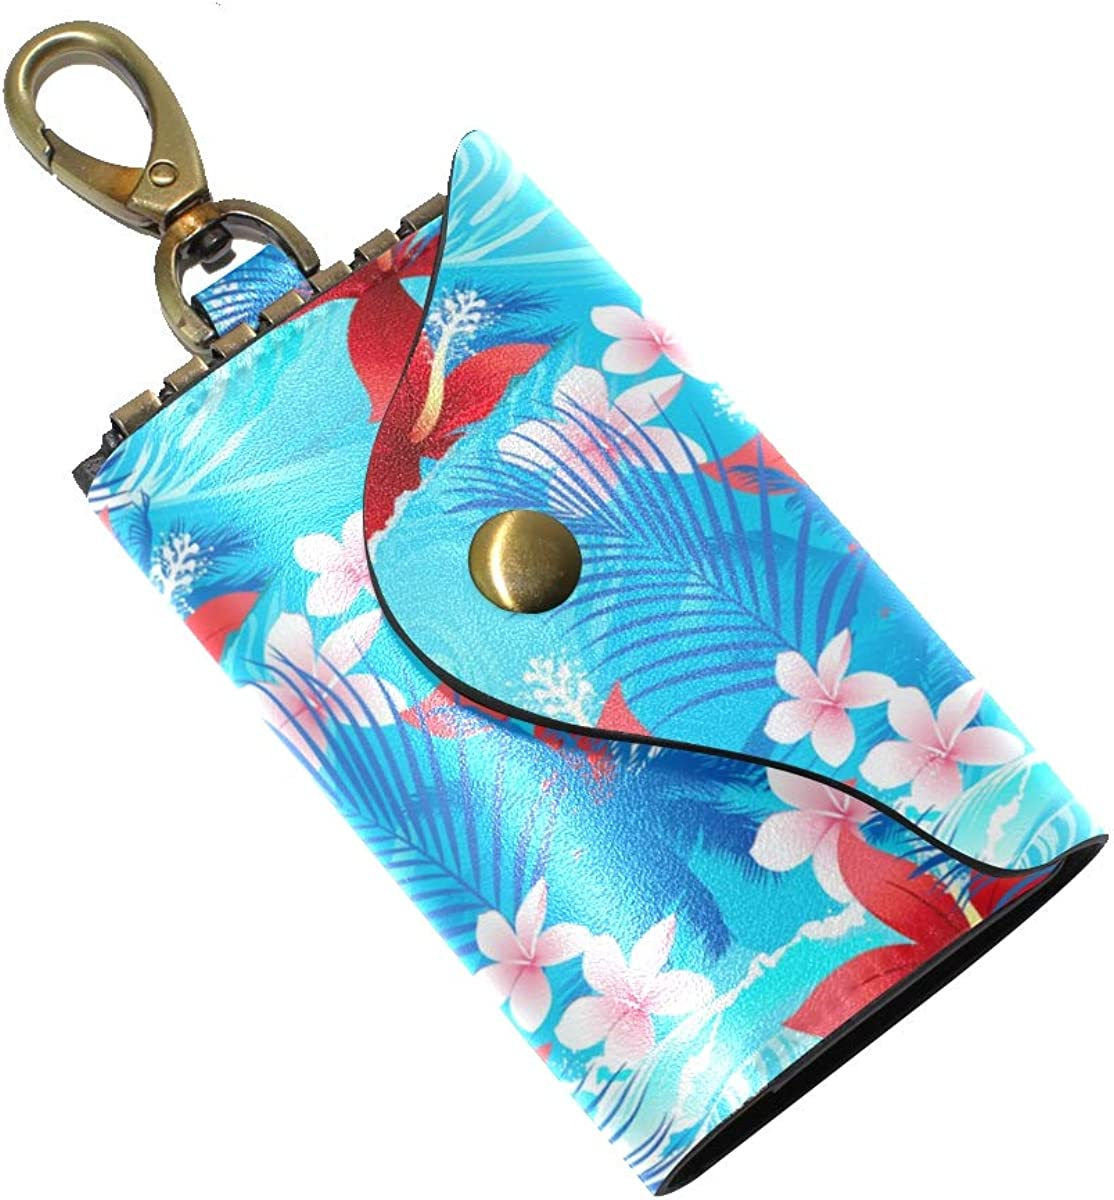 KEAKIA Colorful Leaves Pattern Leather Key Case Wallets Tri-fold Key Holder Keychains with 6 Hooks 2 Slot Snap Closure for Men Women